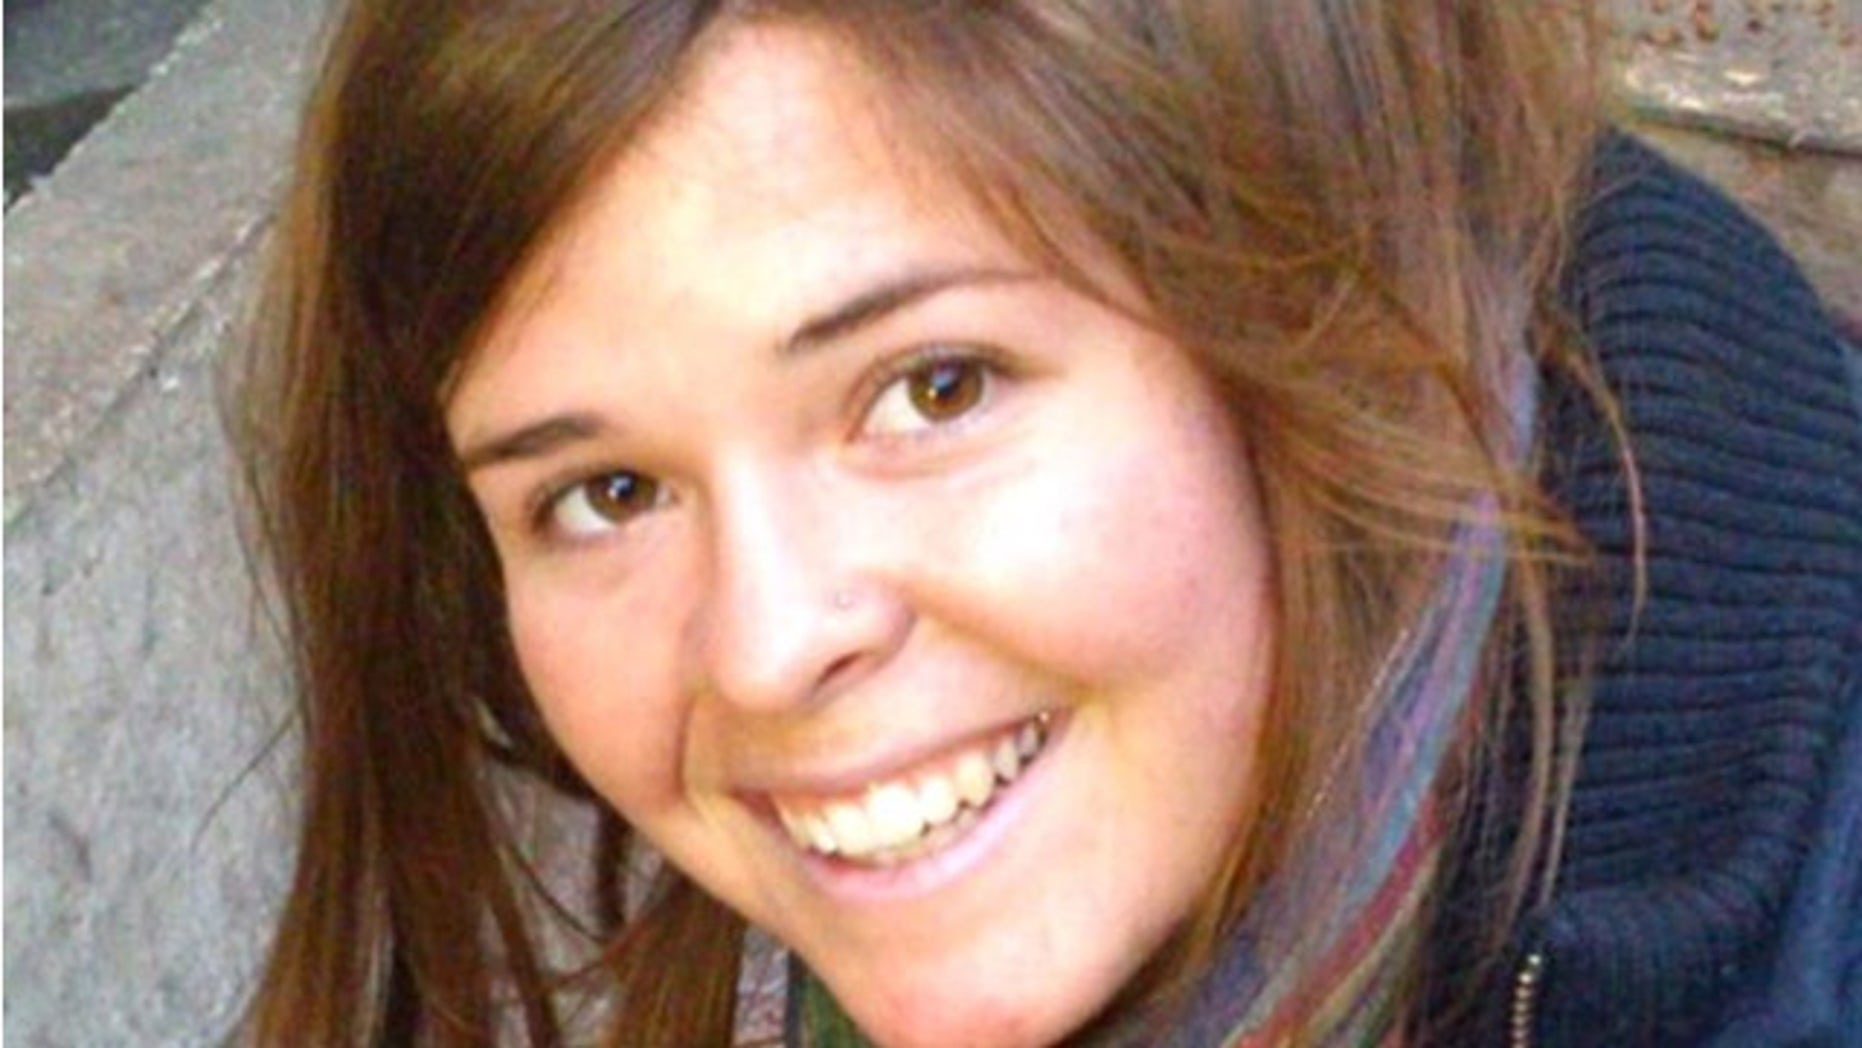 American Kayla Mueller, 26, was killed while in the hands of ISIS, her family said Tuesday.